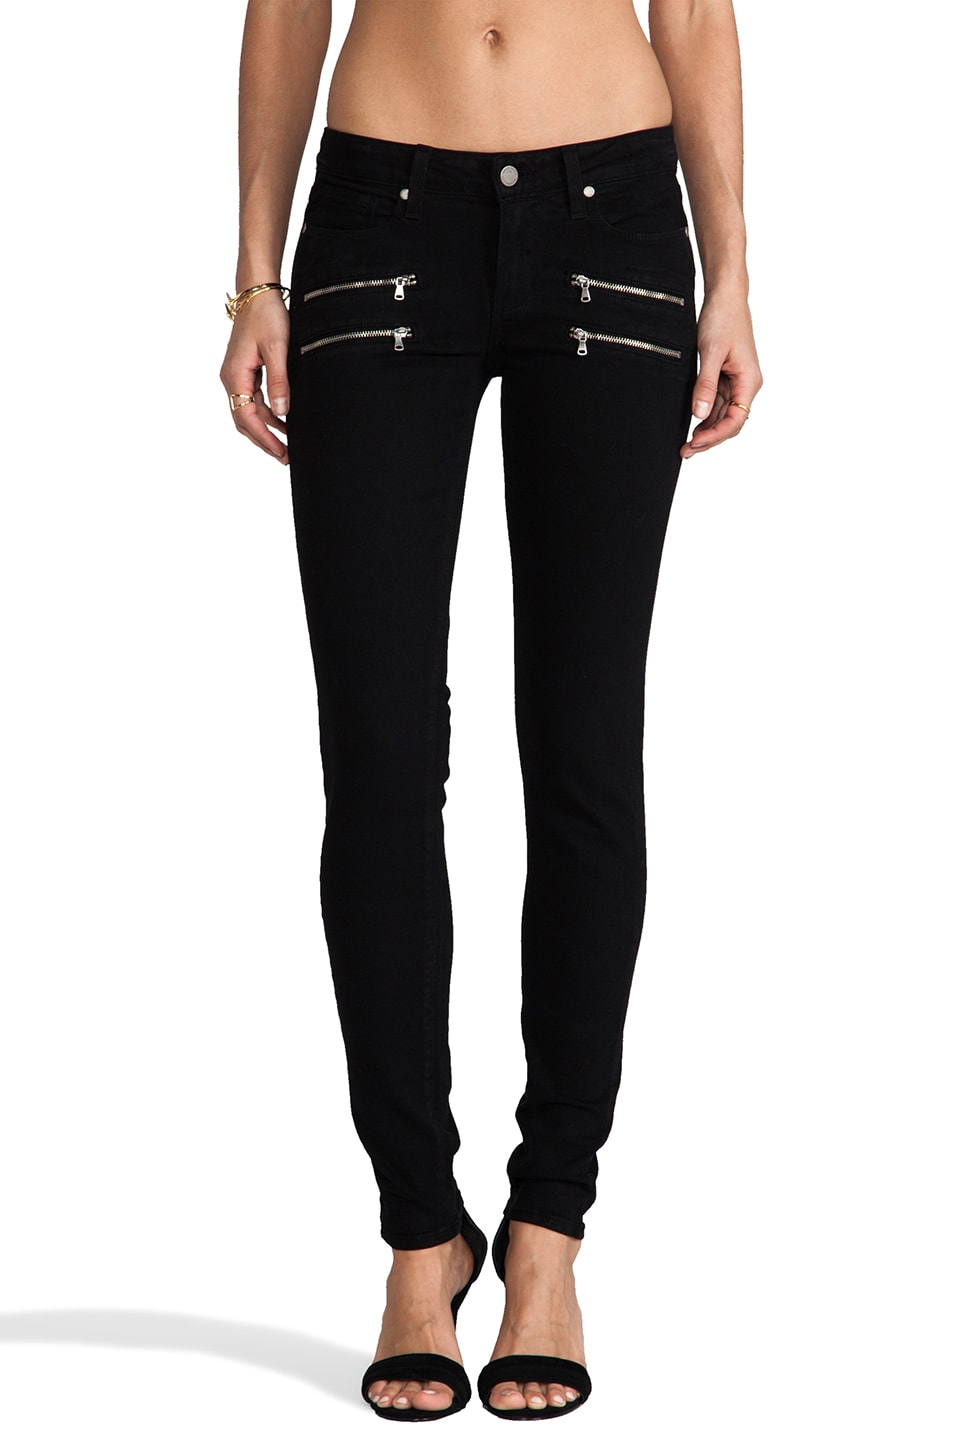 Paige Denim Edgemont Ultra Skinny in Black